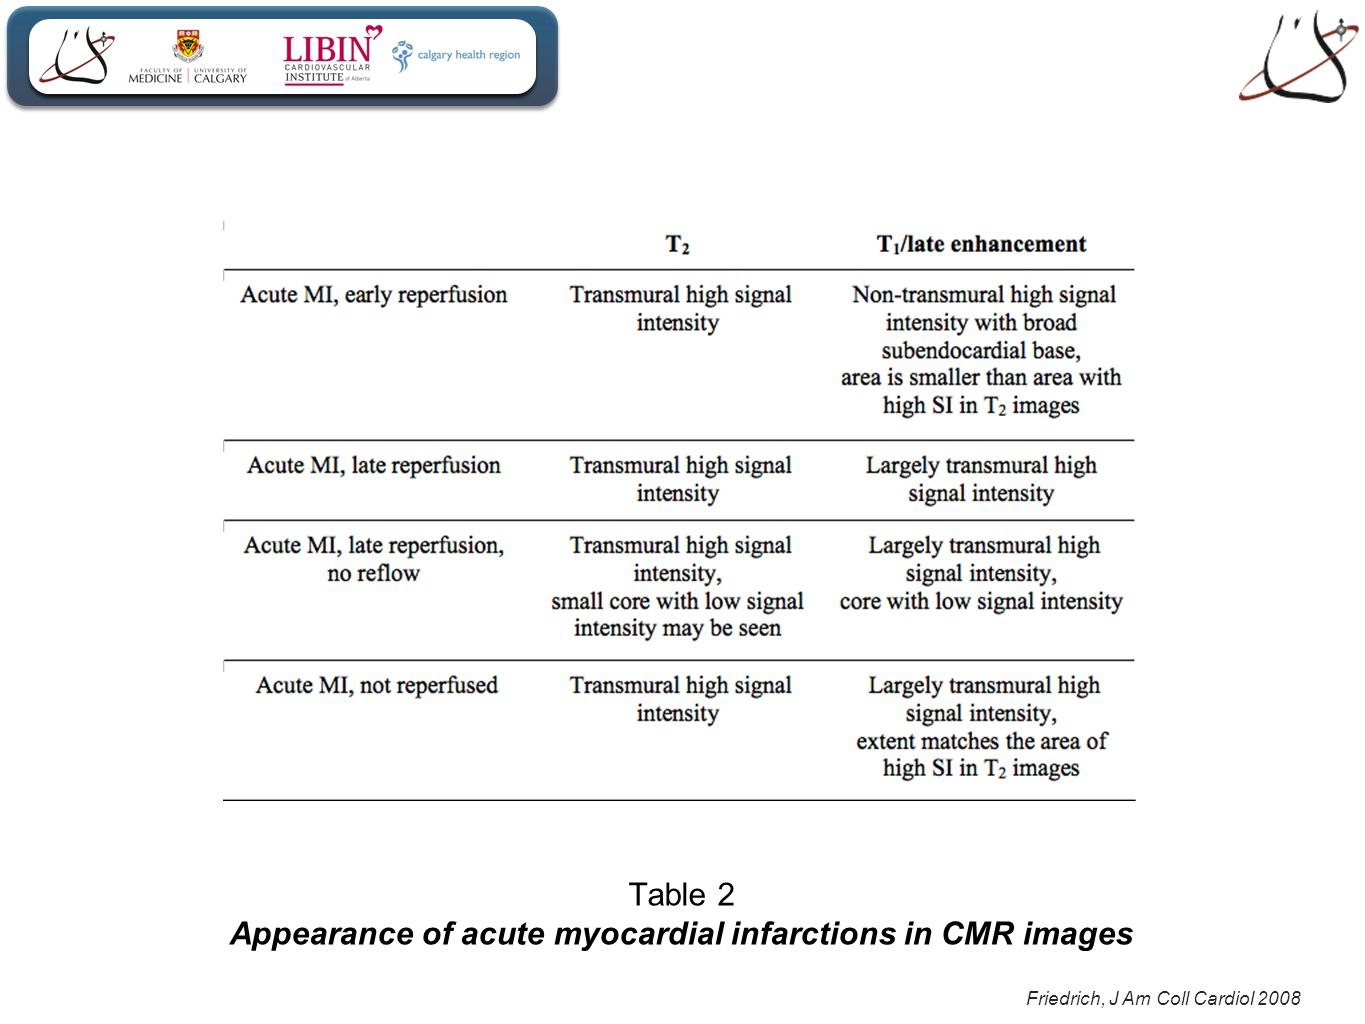 Friedrich, J Am Coll Cardiol 2008 Table 2 Appearance of acute myocardial infarctions in CMR images